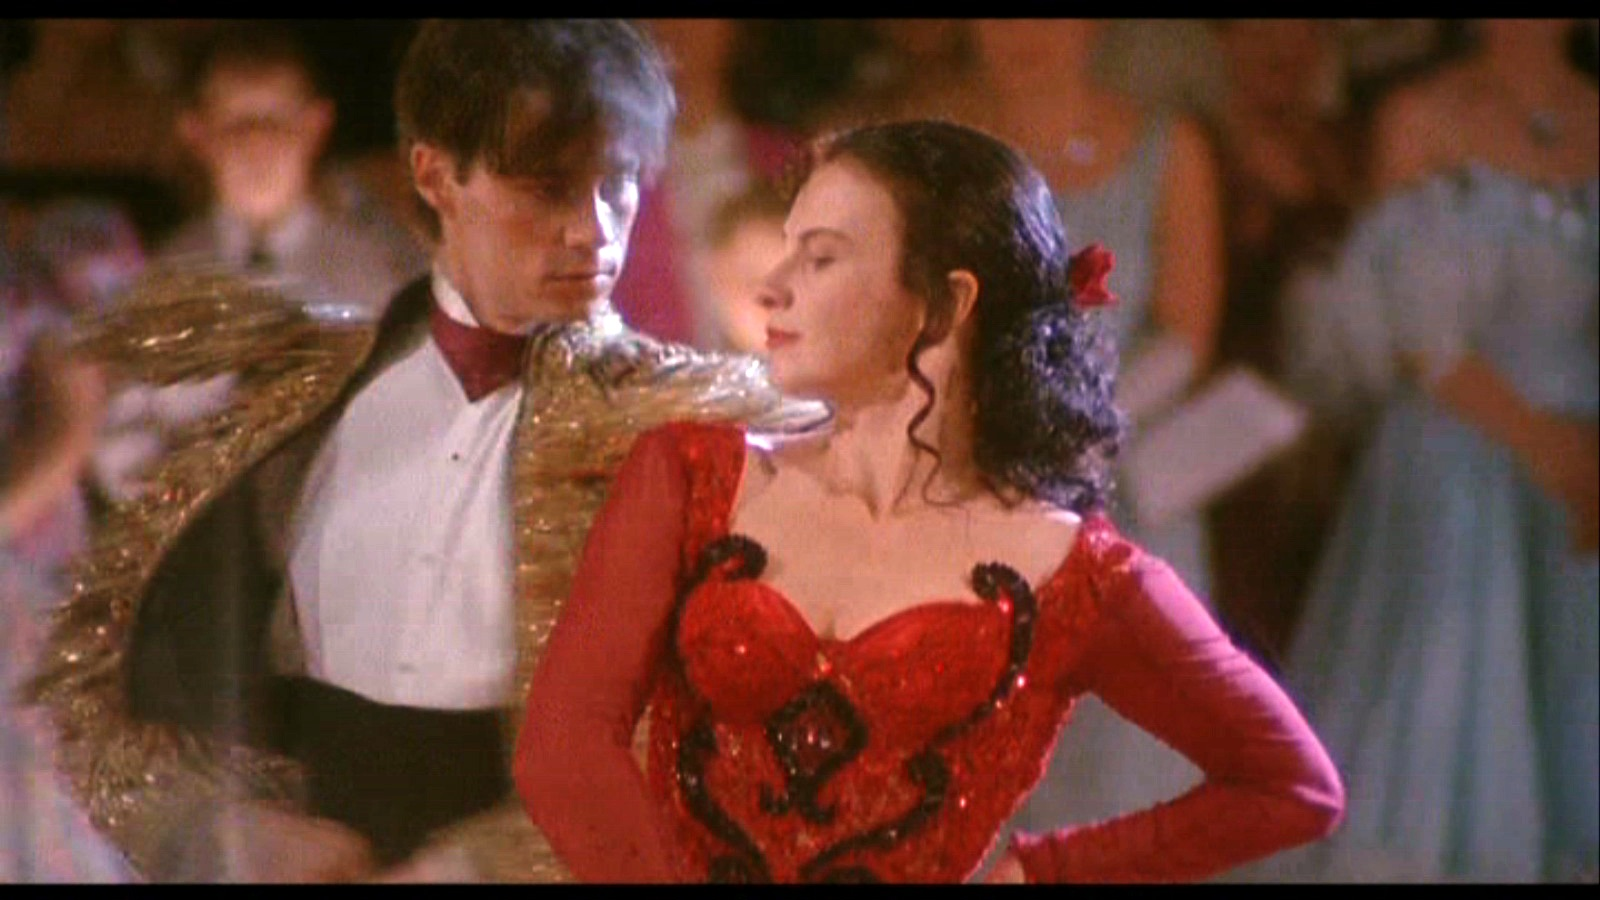 http://images.fanpop.com/images/image_uploads/Strictly-Ballroom-baz-luhrmann-749298_1600_900.jpg